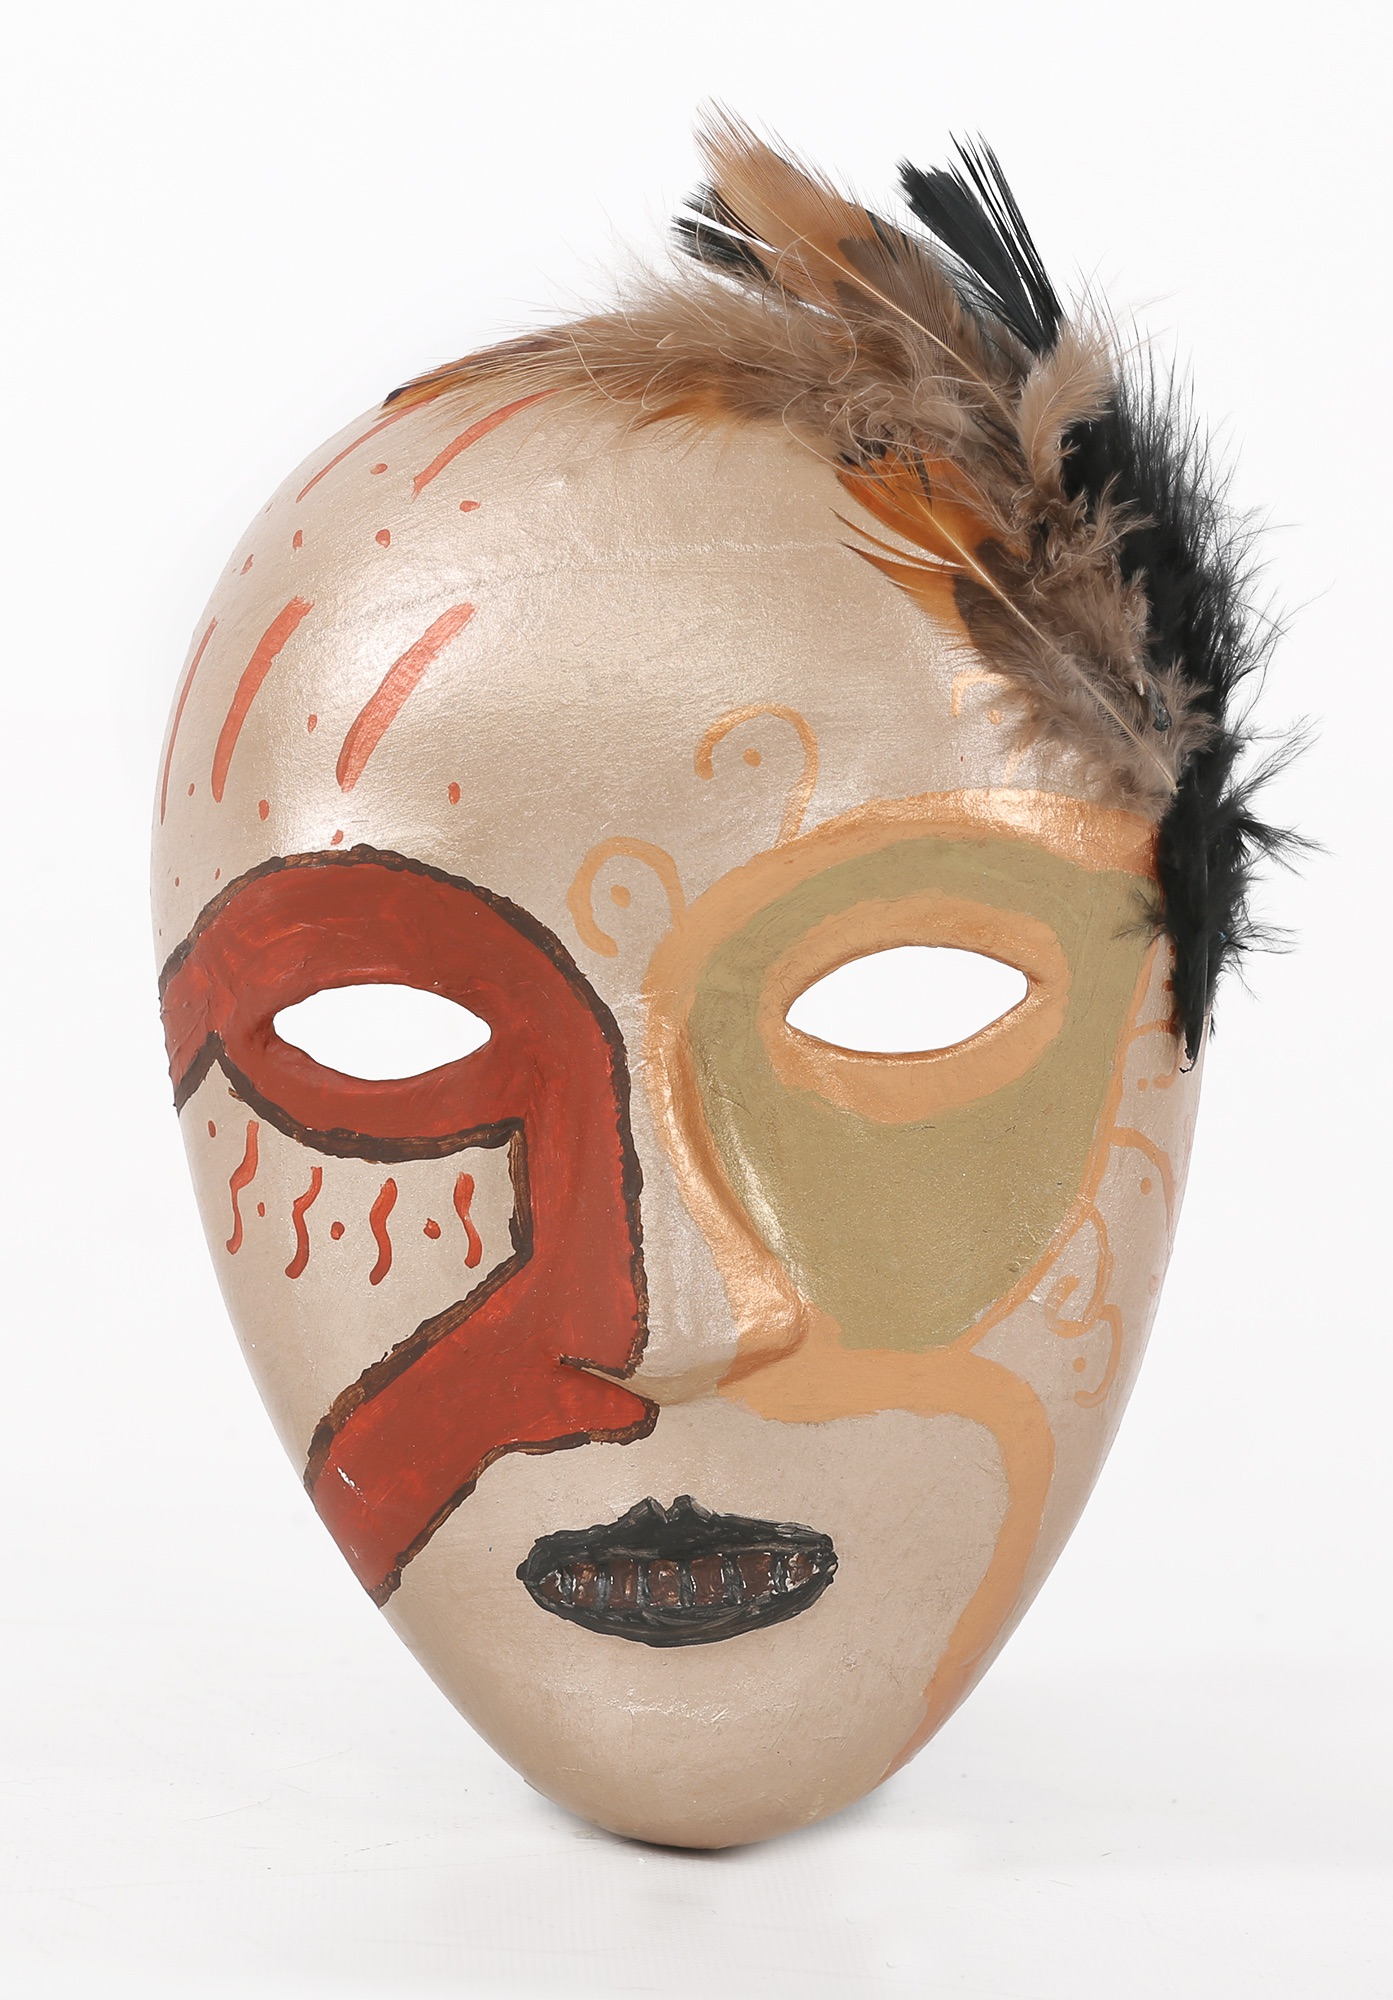 A mask painted in gold, with a traditional opera mask ringing the eyes in scarlet and bronze, and feathers attached to the top left side of the forehead.